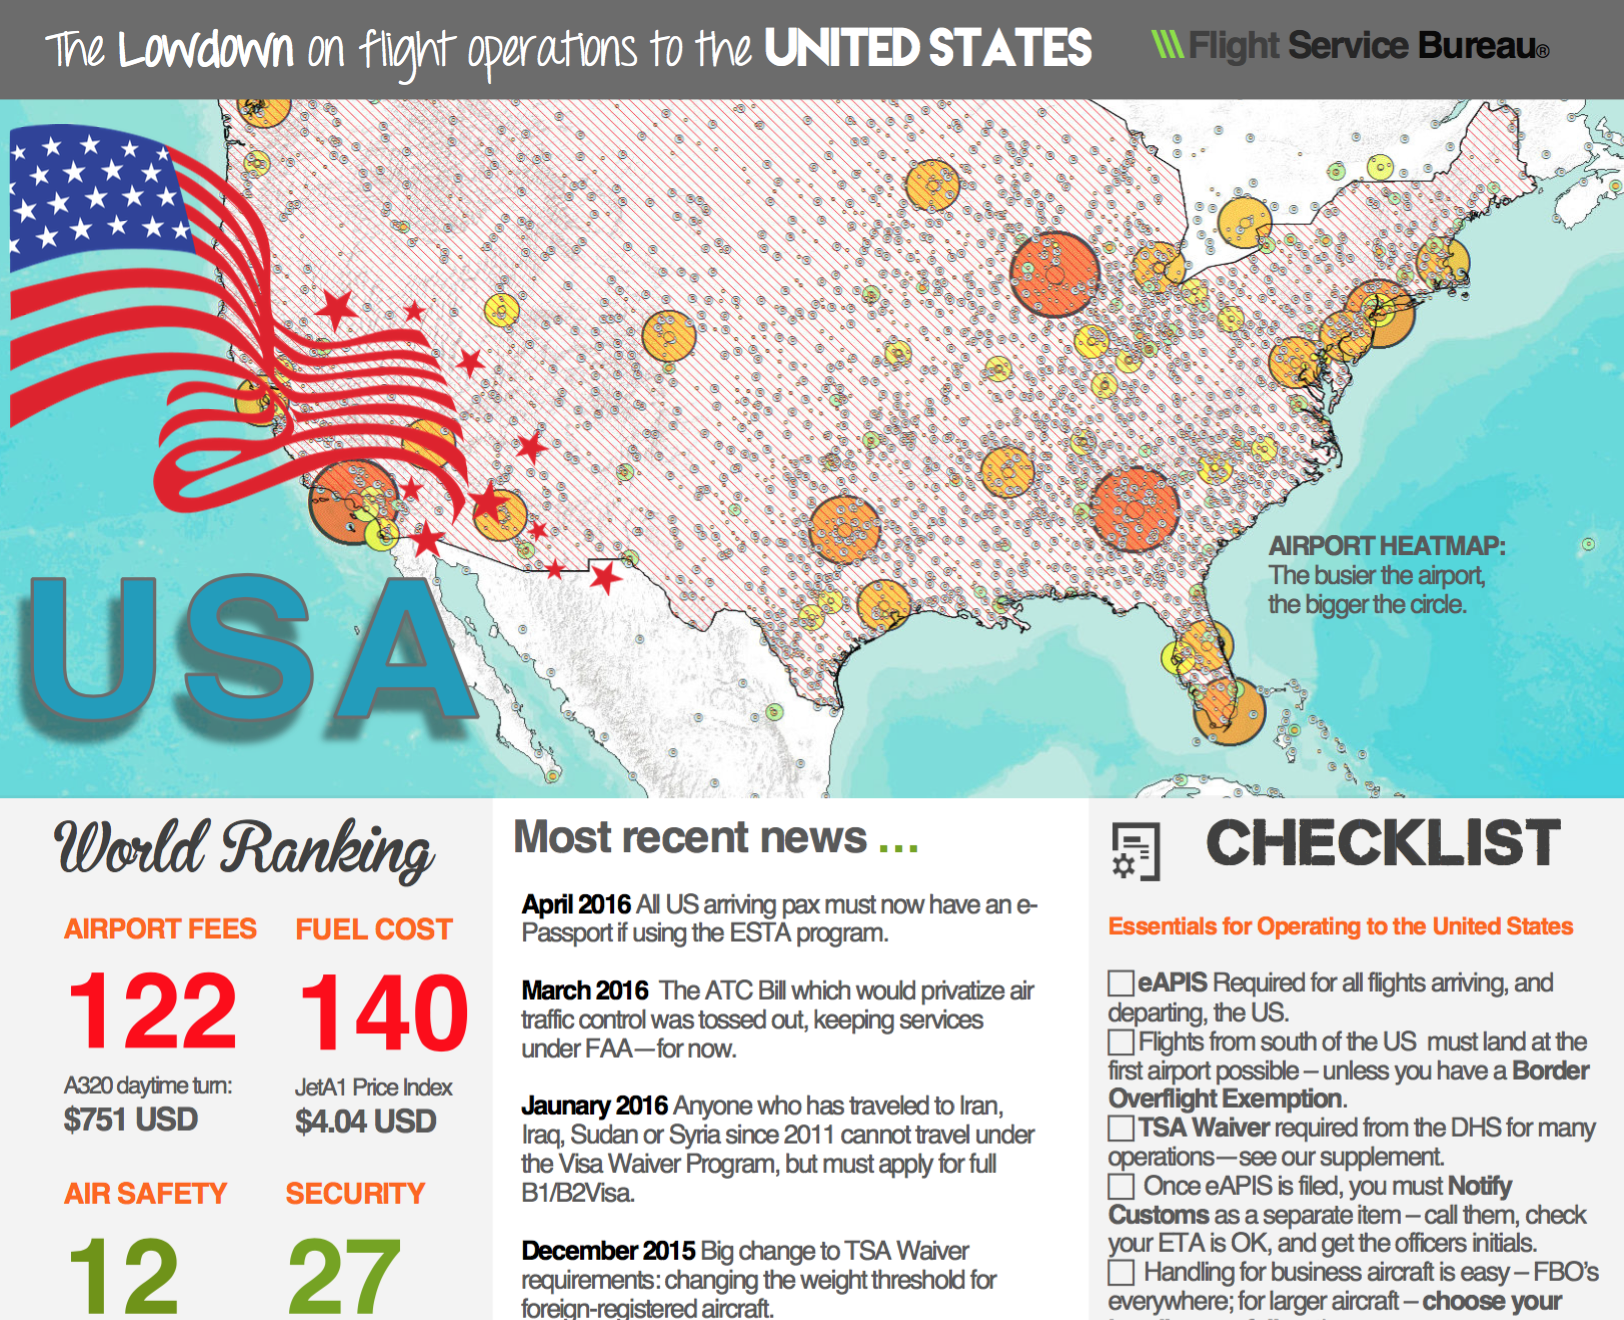 USA – the Lowdown on Flight Ops